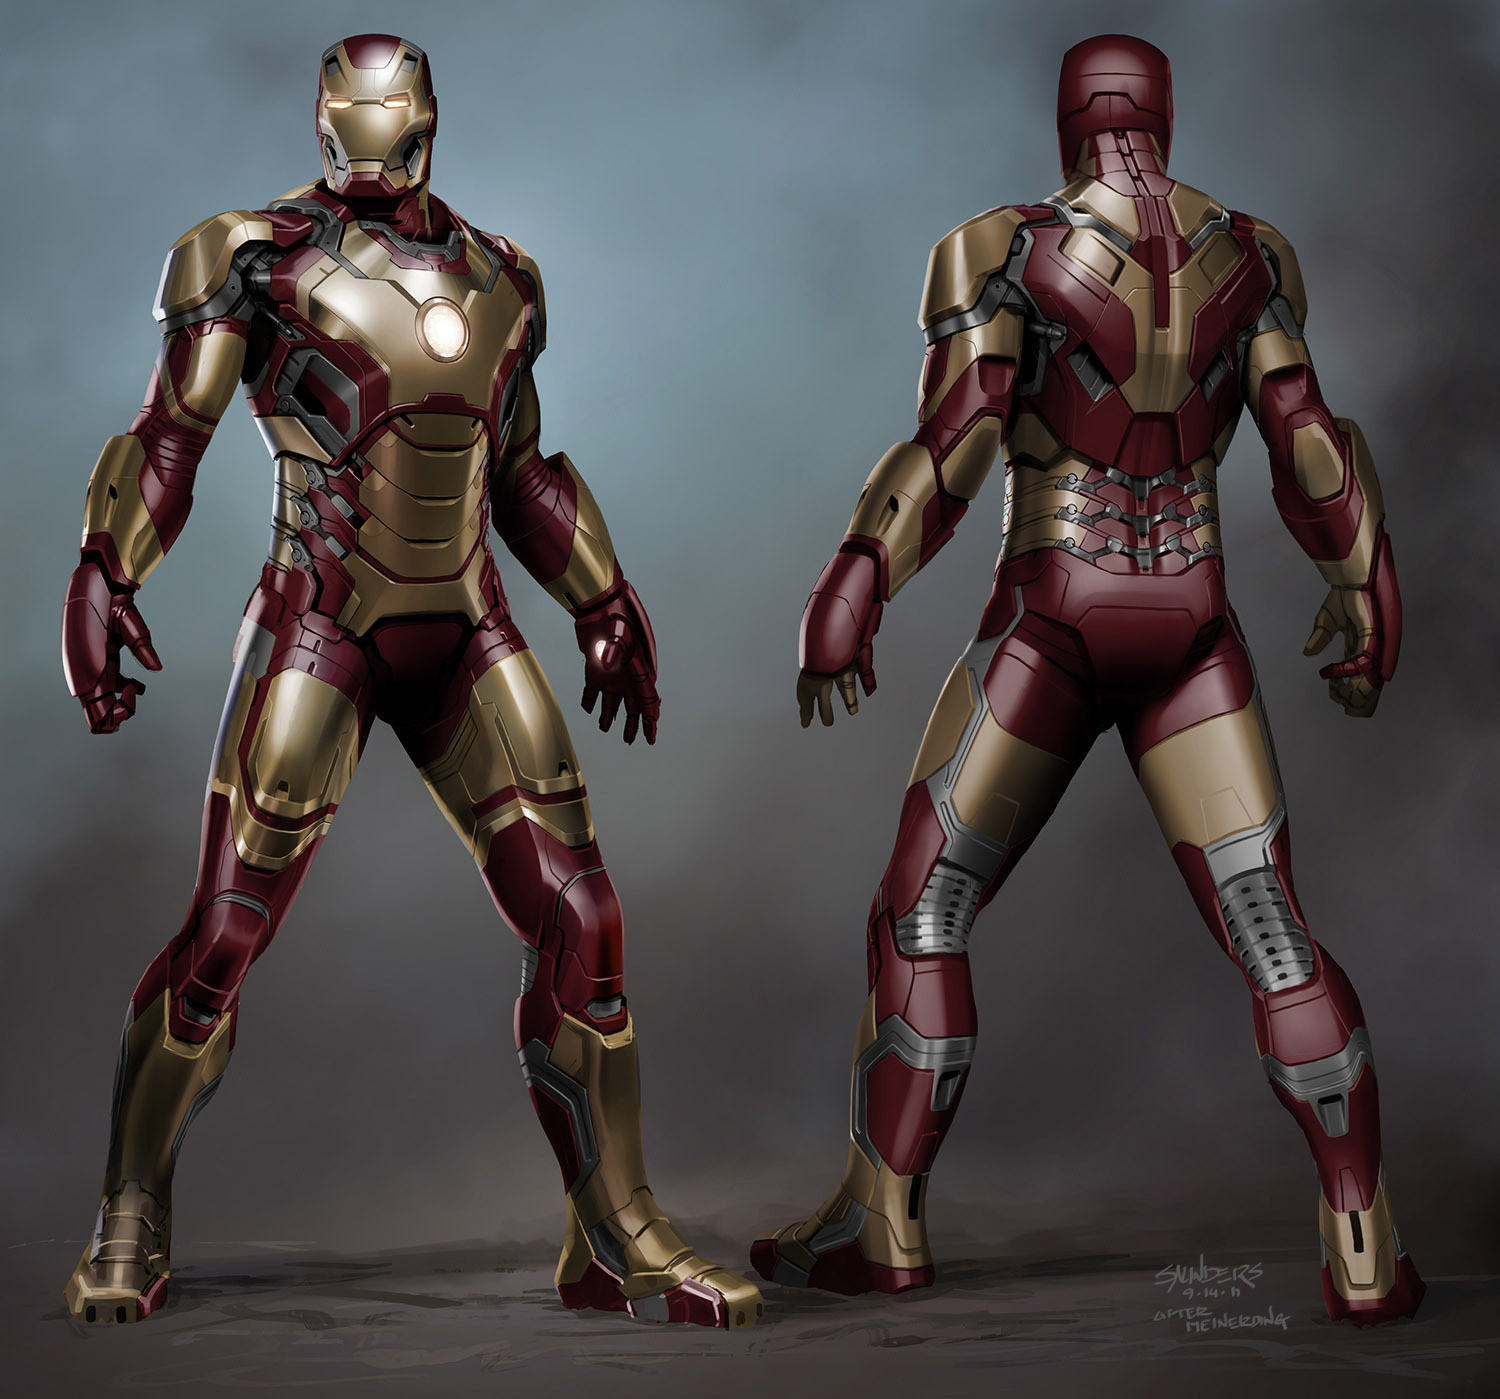 Incredible IRON MAN 3 Concept Art by Phil Saunders « Film ...